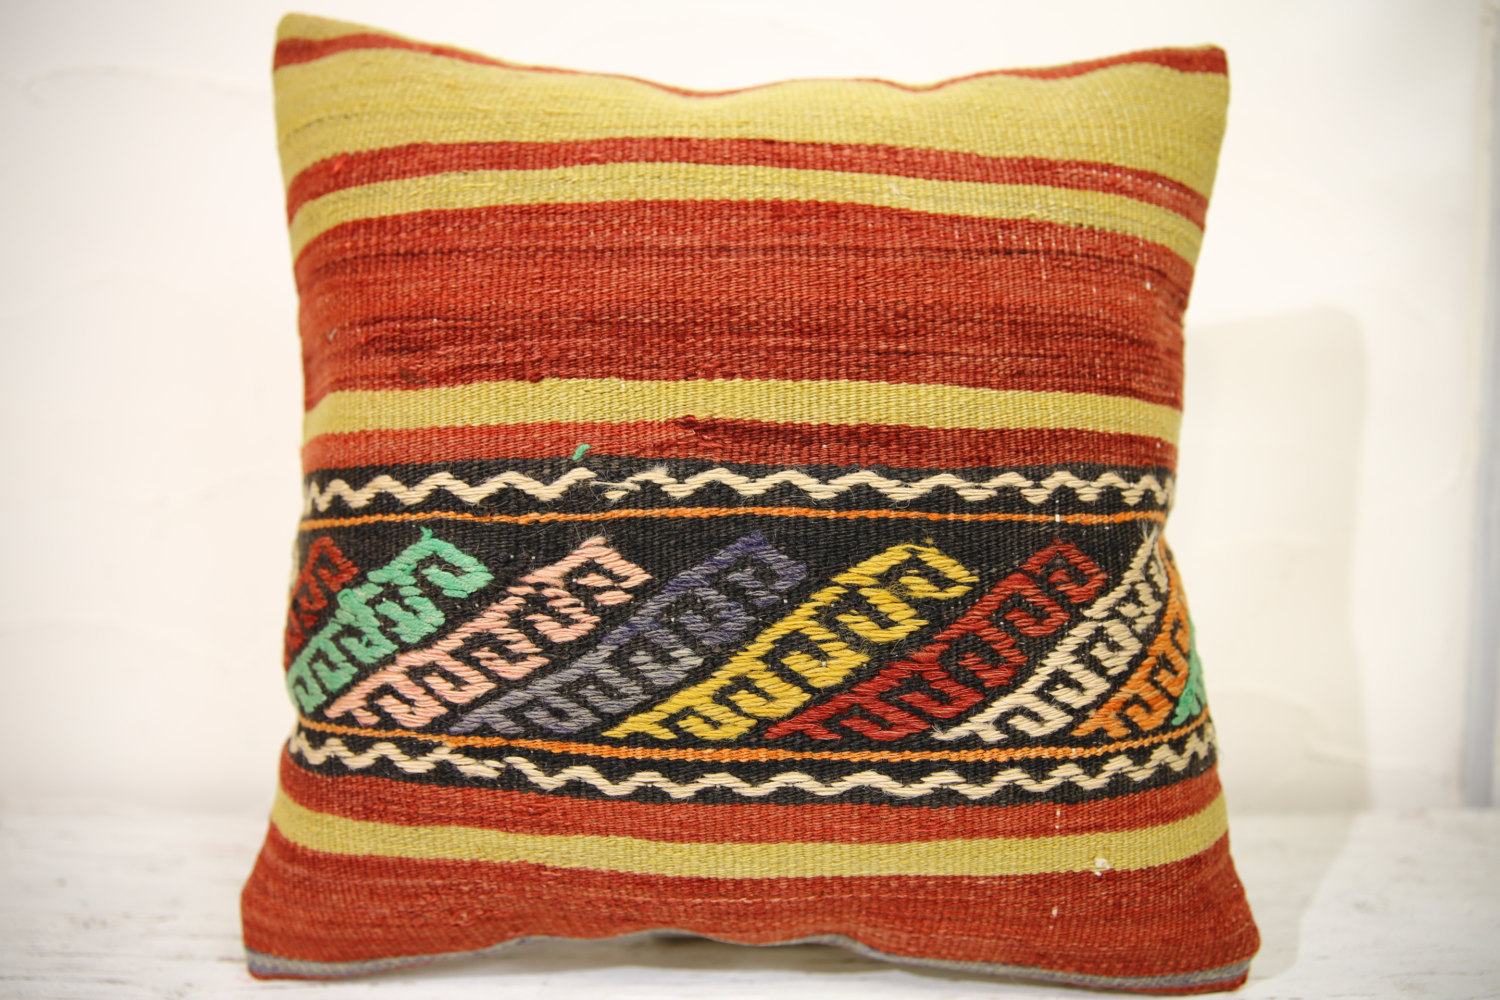 Kilim Pillows | 16x16 | turkish pillows | 989 | Accent Pillows,Decorative Pillow